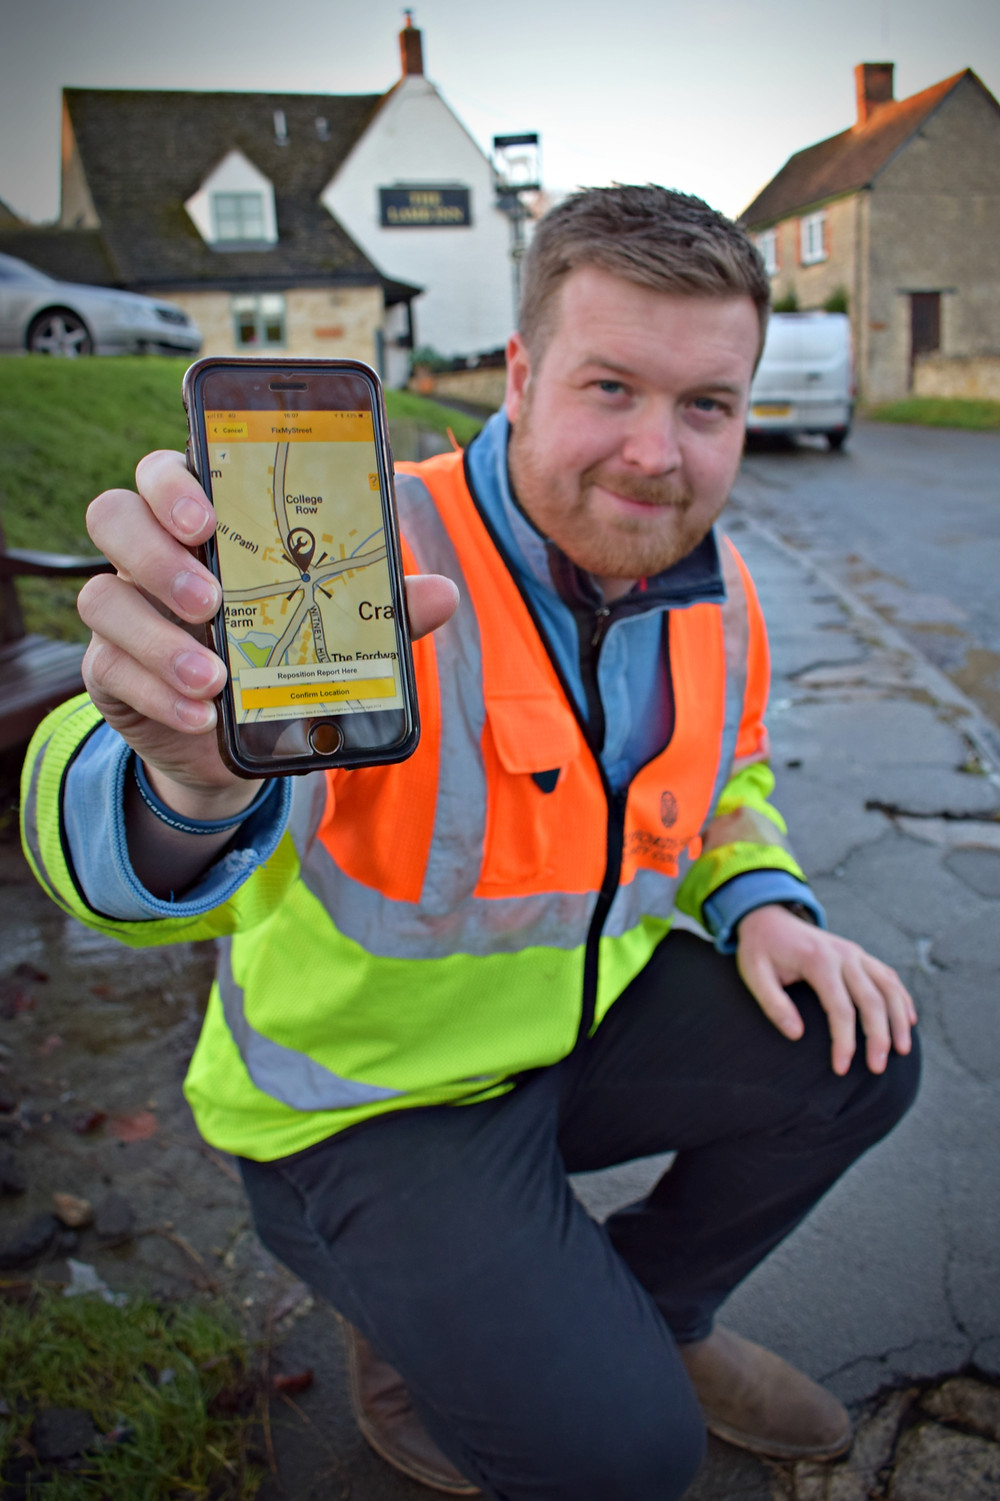 Cllr Walker with the FixMyStreet App on his phone.